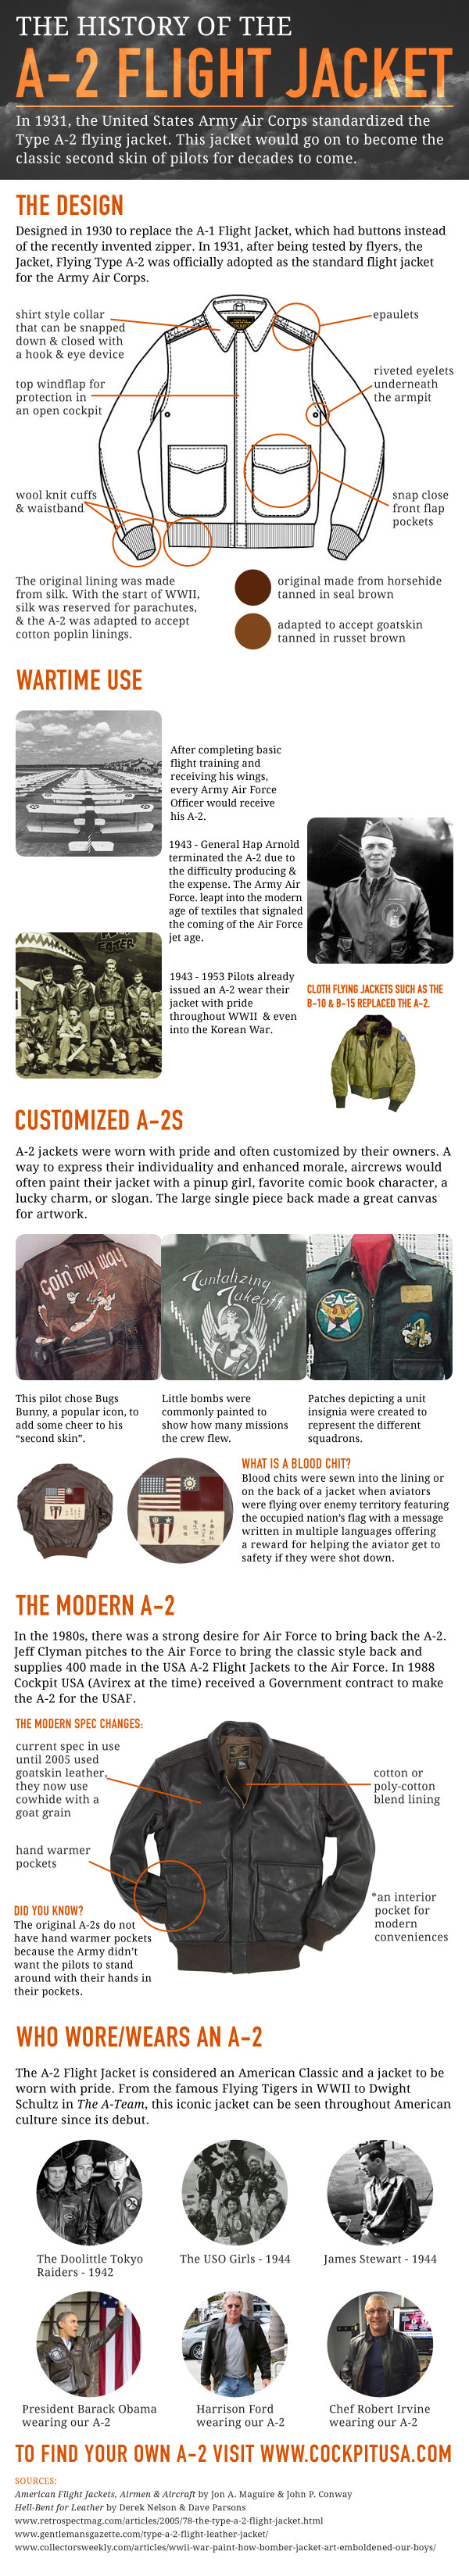 A-2 Flight Jacket infographic for Cockpit USA